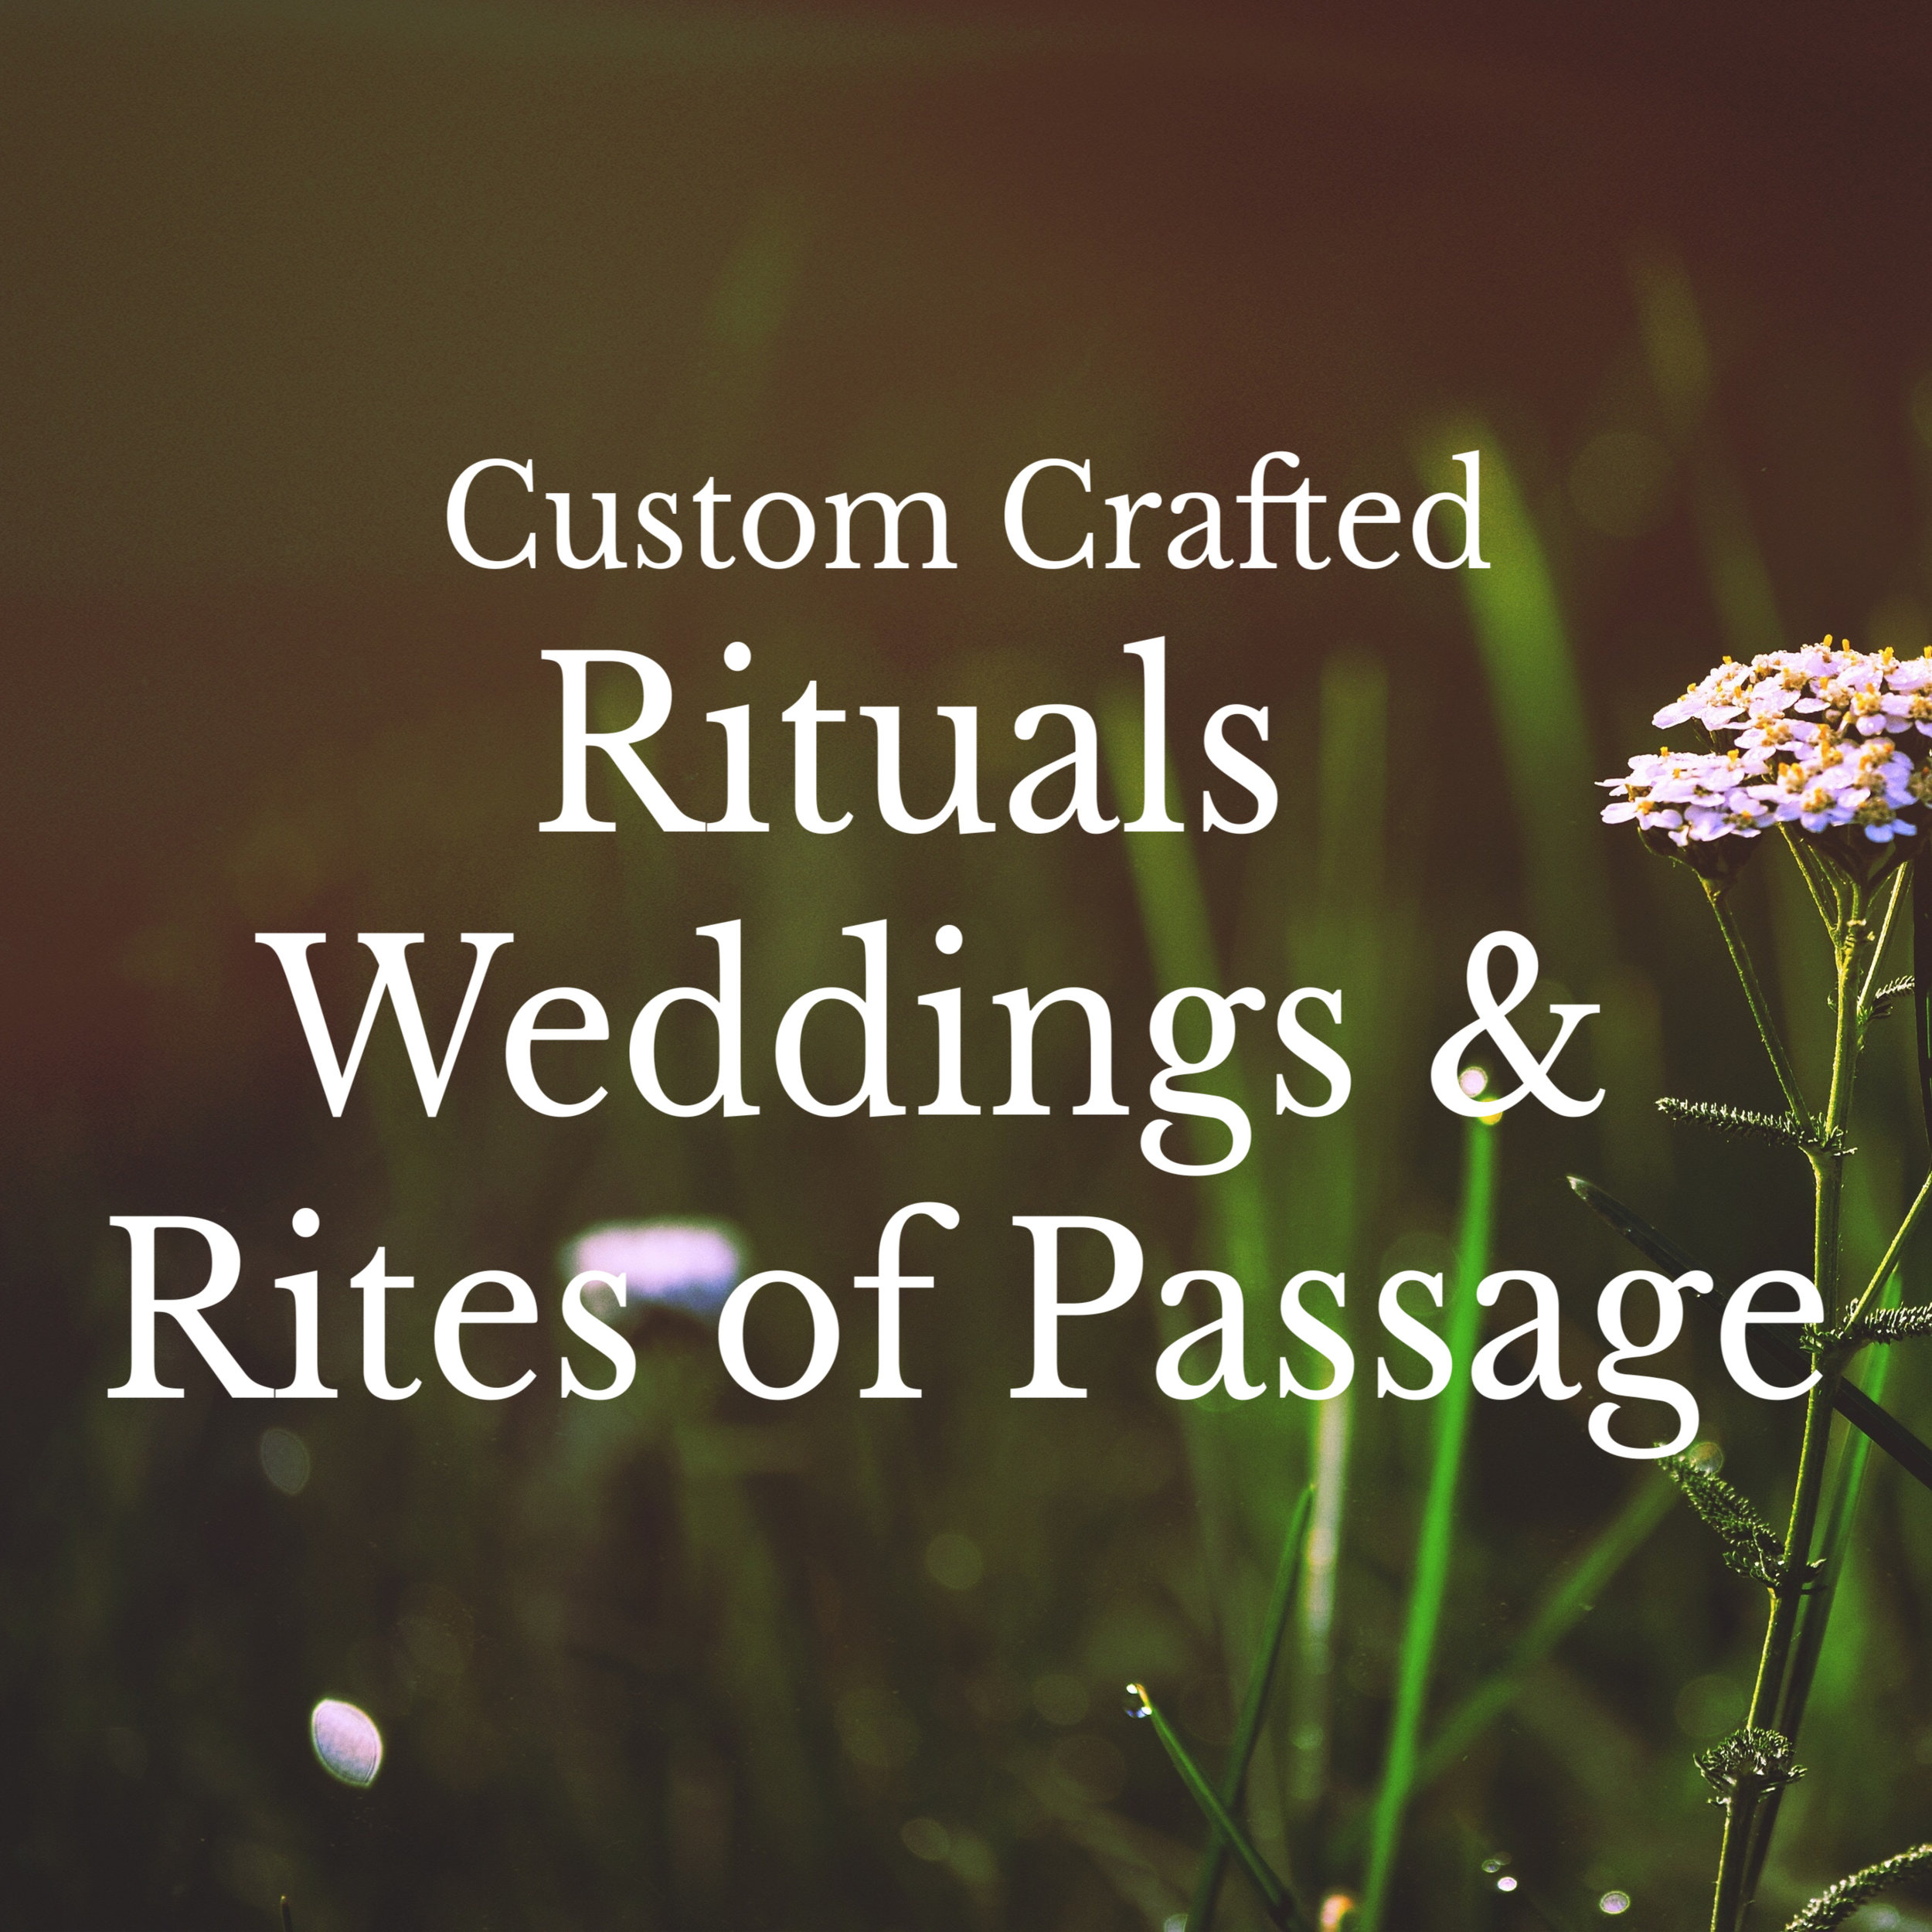 Custom rites of passages for life's milestones including weddings, age transitions, deaths & blessing of spaces. Click here to contact me for information